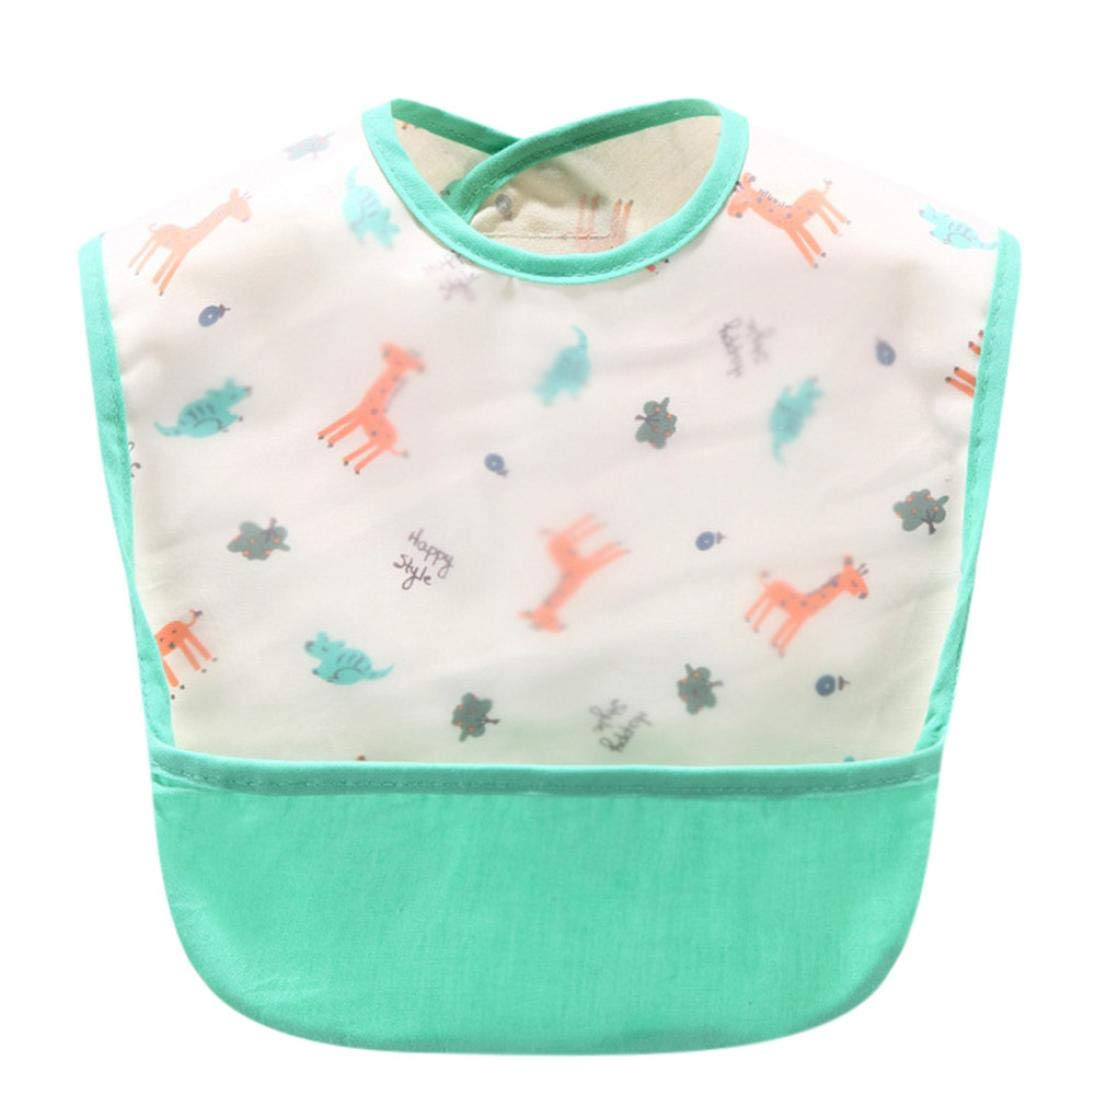 Cute Kids Waterproof Bibs Vest Easily Wipes Clean Comfortable Soft Baby Feeding Saliva Dripping Bibs Quick Drying Food Grade Material Bibs Bacteria Resistant for Infants Toddlers (P) Y56(TM)